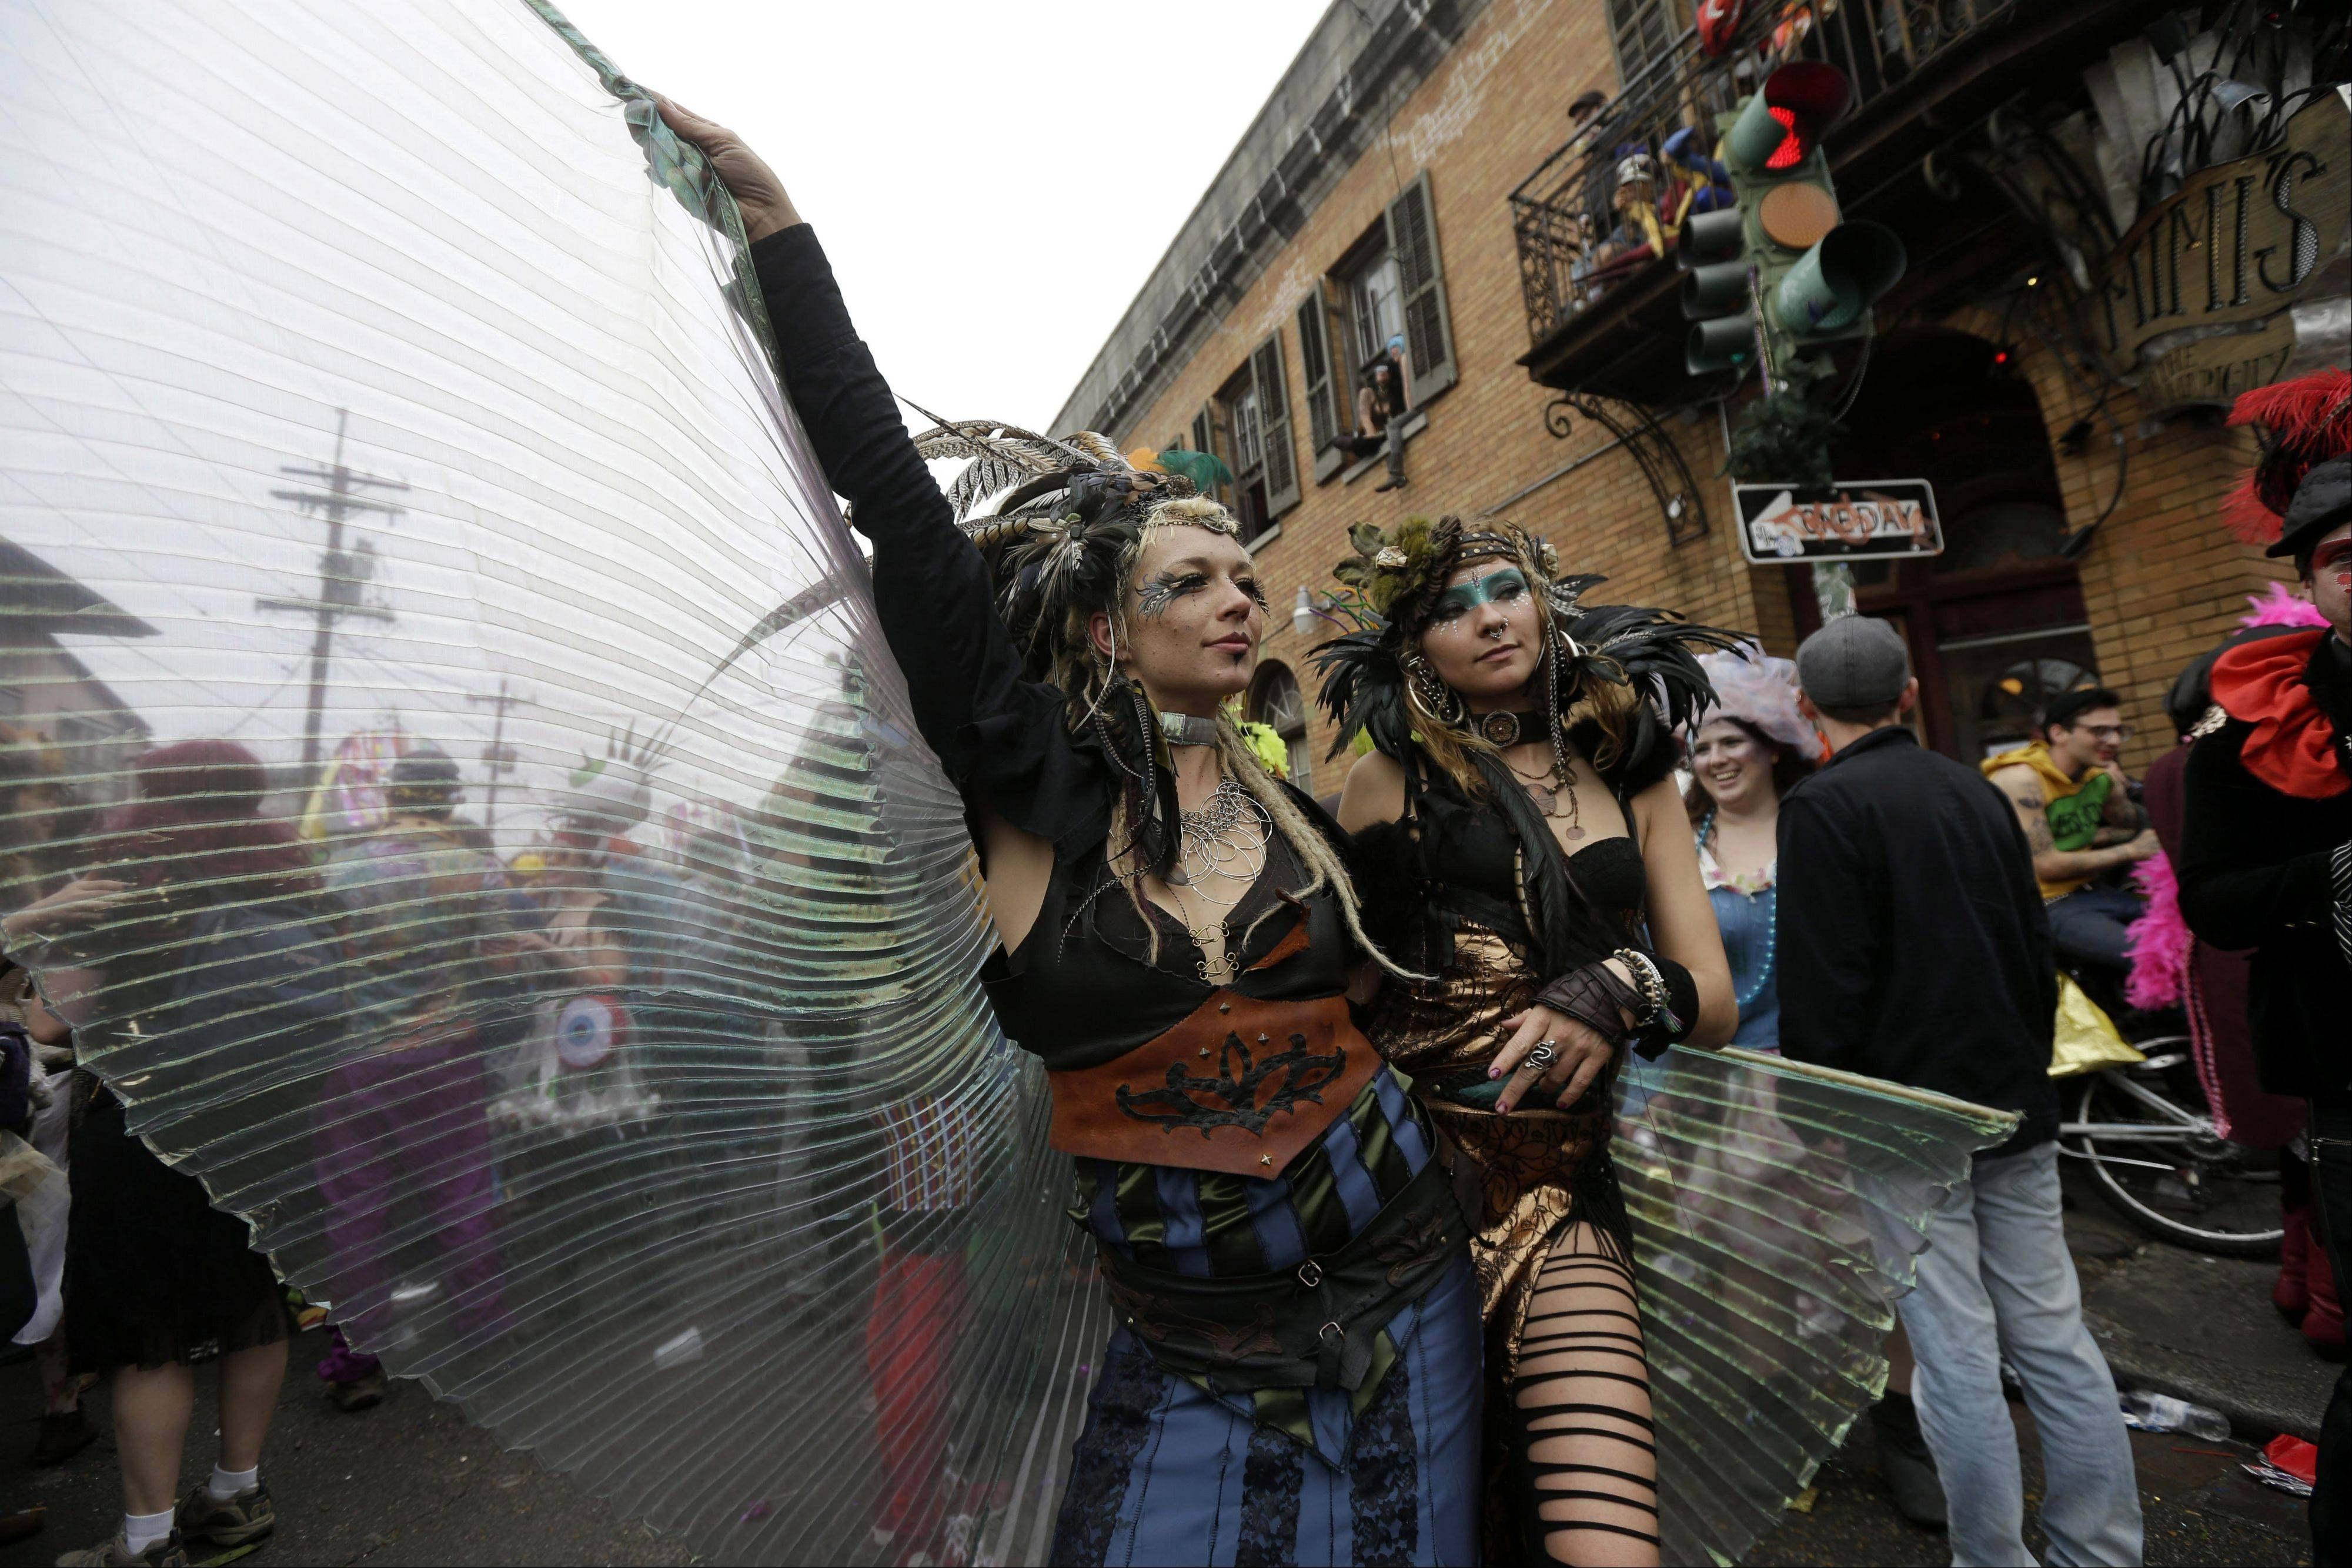 Revelers show off their costumes as they march through the Bywater section of New Orleans during the Society of Saint Anne walking parade during Mardi Gras day Tuesday.